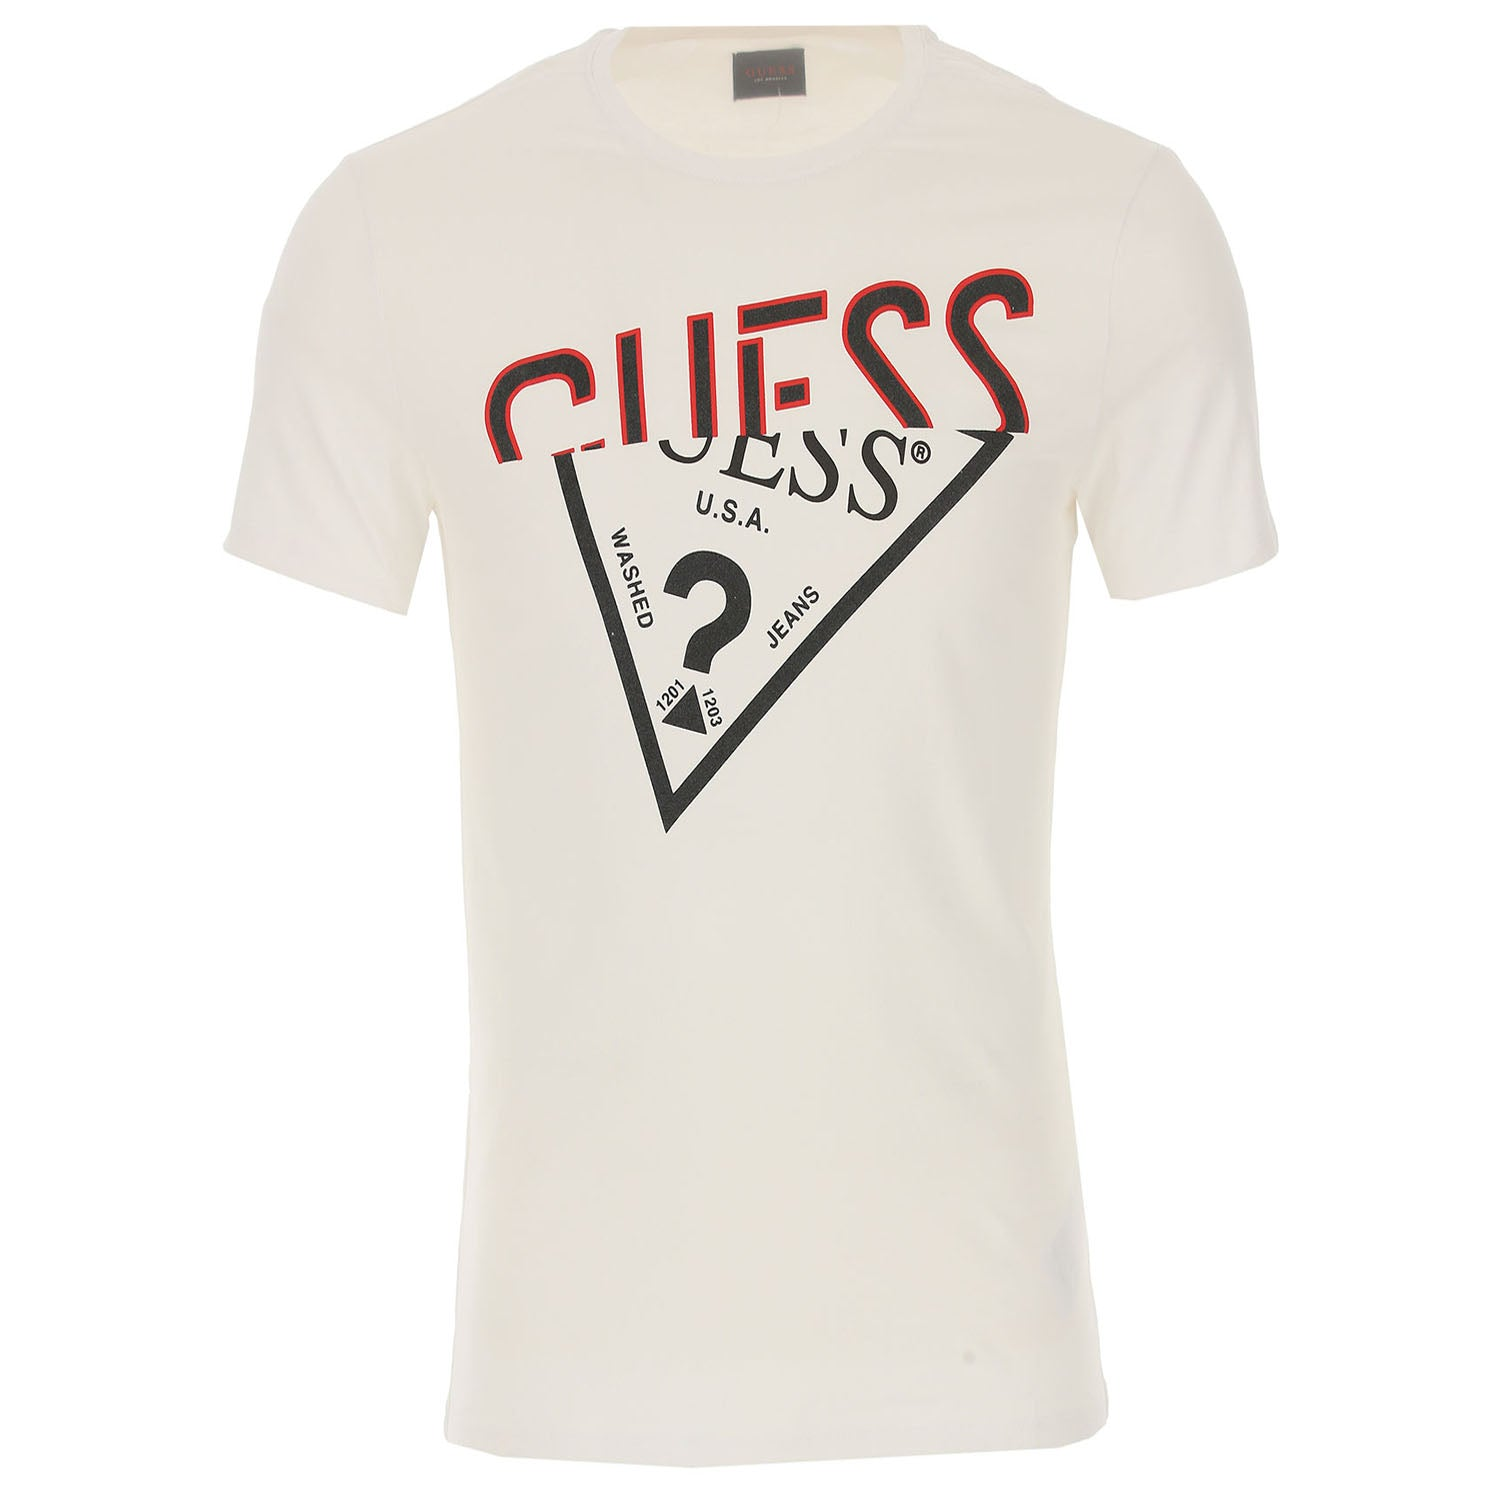 Guess Crew Neck Perspective Logo Detail T-Shirt